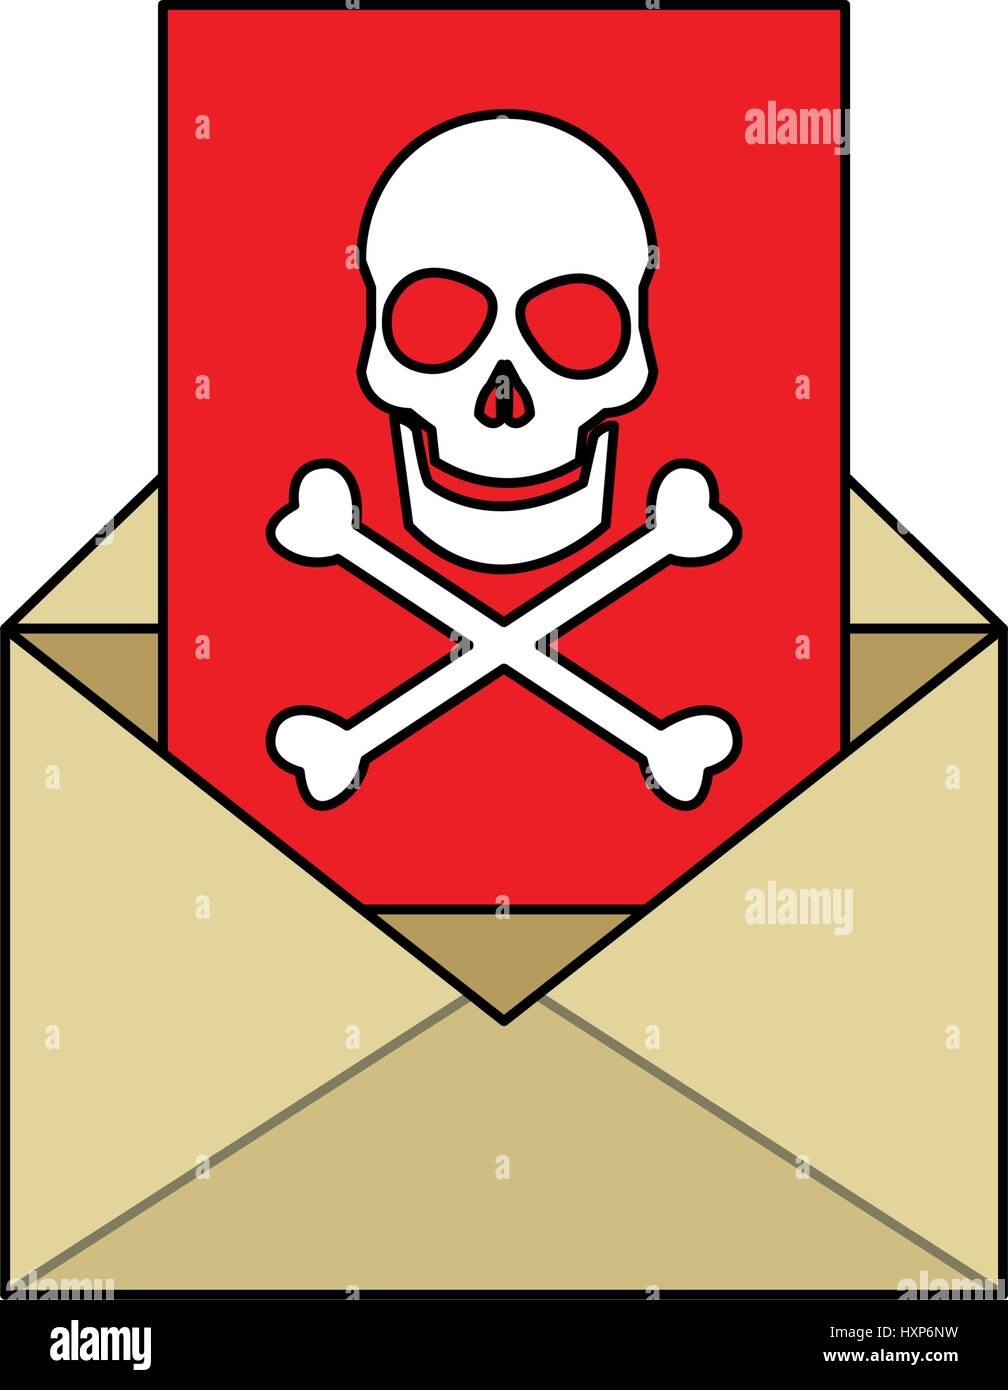 mail with virus icon image  - Stock Image